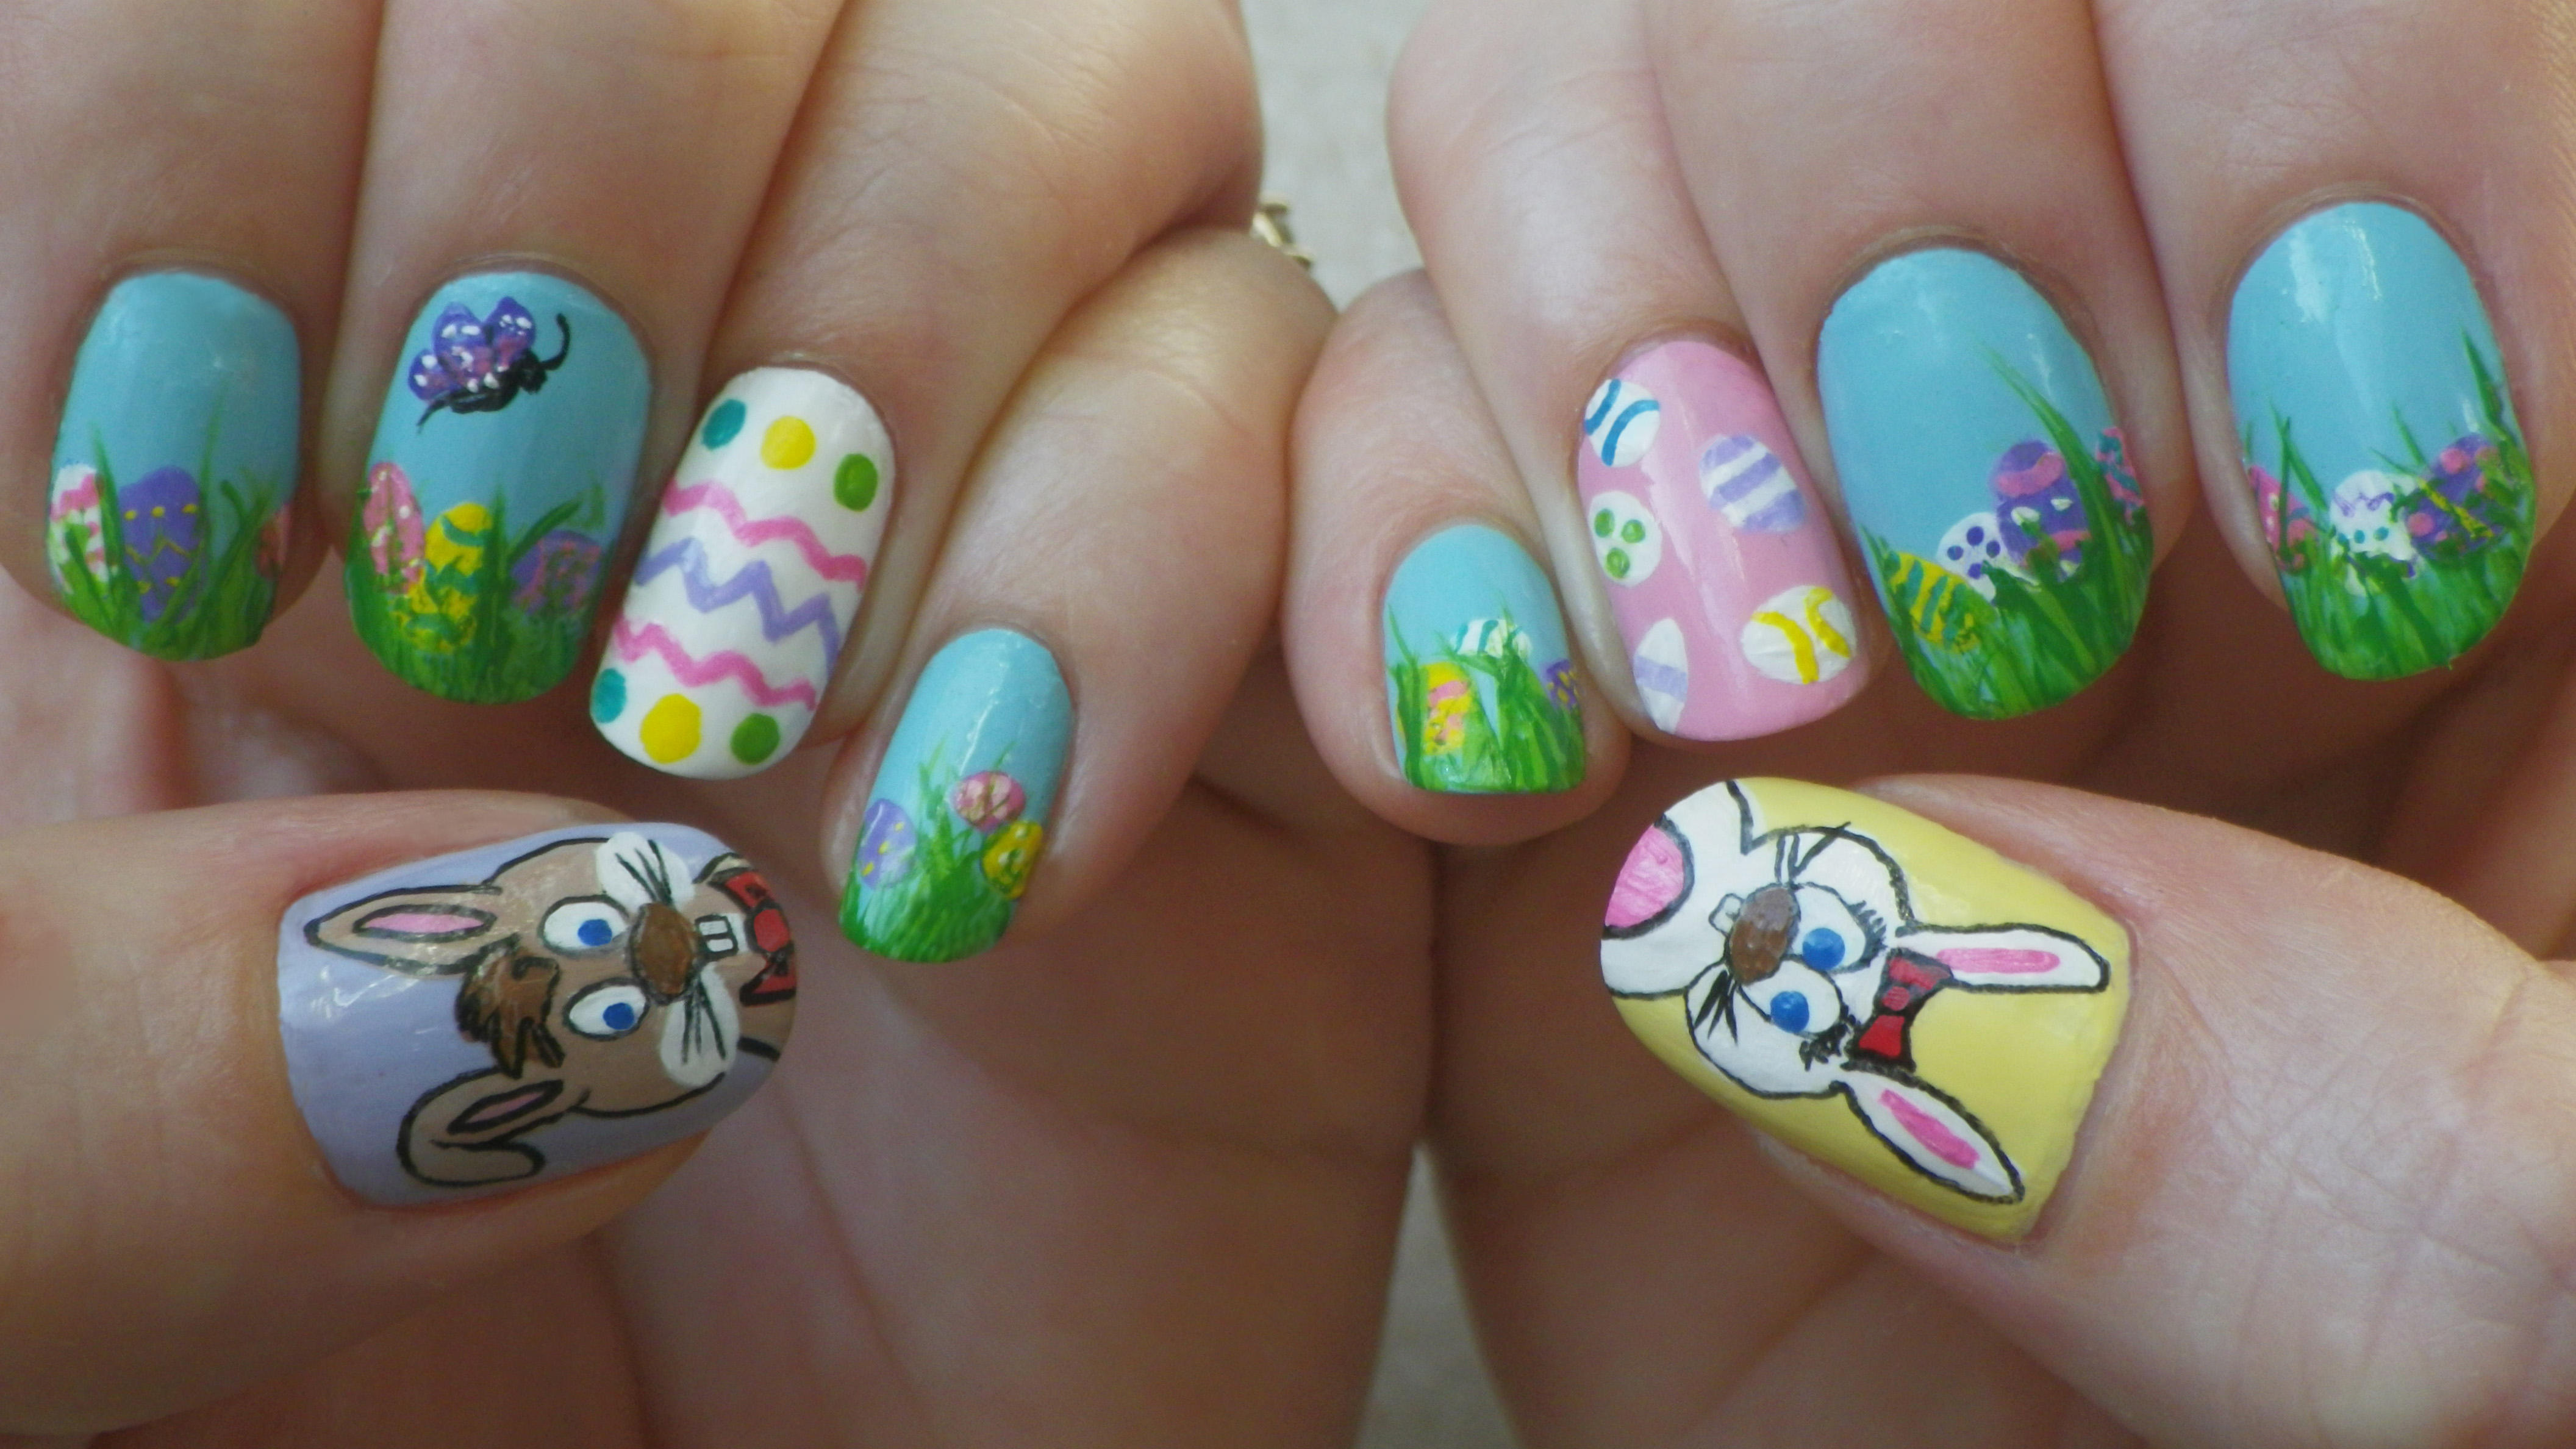 easter nail designs 13 30 Awesome Easter Nail Designs 2015 30 Awesome Easter Nail Designs 2015 easter nail designs 13